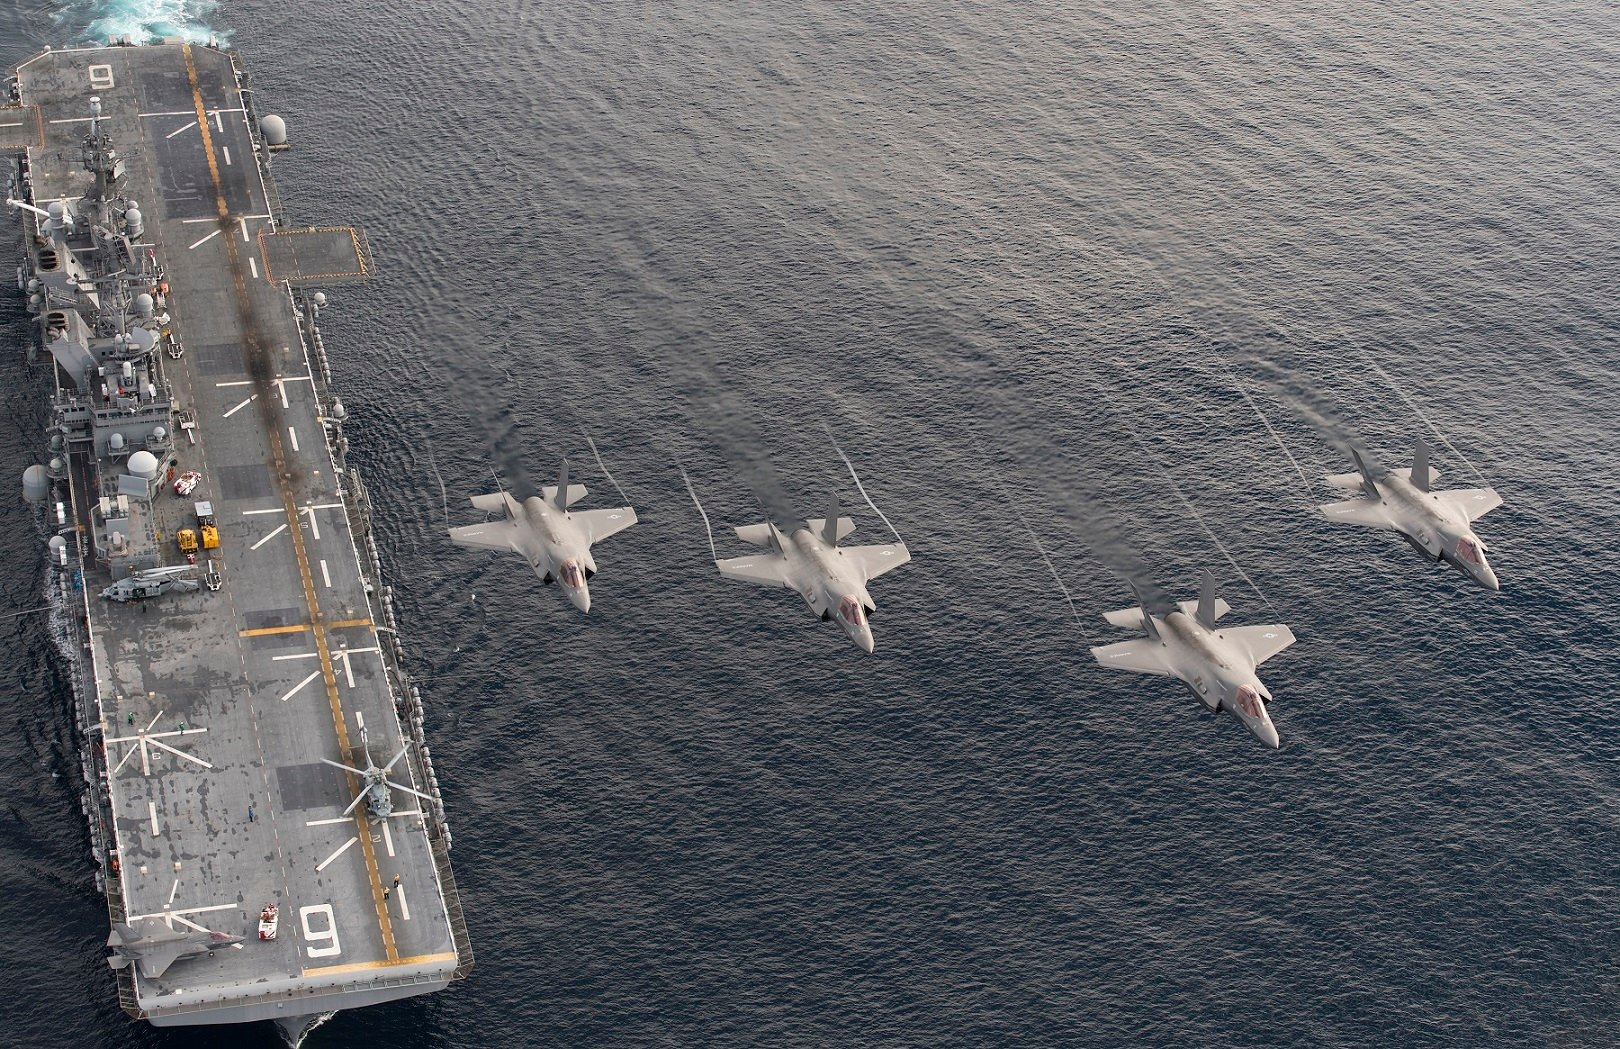 Four F-35B Lightning II aircraft perform a flyover above the amphibious assault ship USS America (LHA 6) on Nov. 20, 2016. US Navy Photo